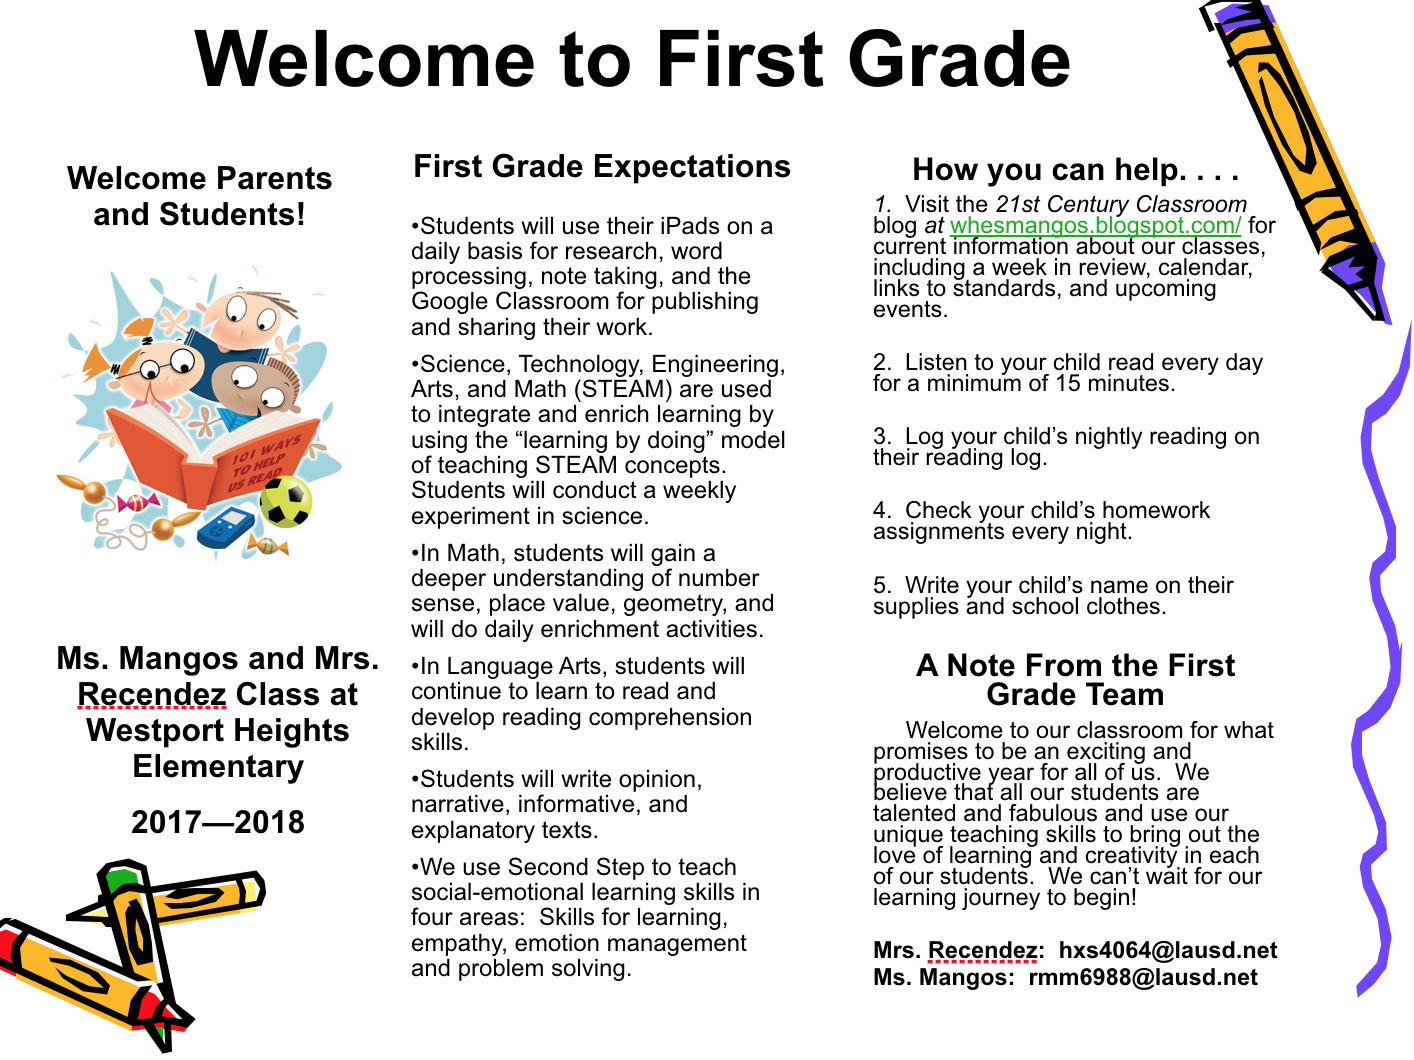 We look forward to working with each of our students and families as we  gear up for an amazing year of learning with our first graders.